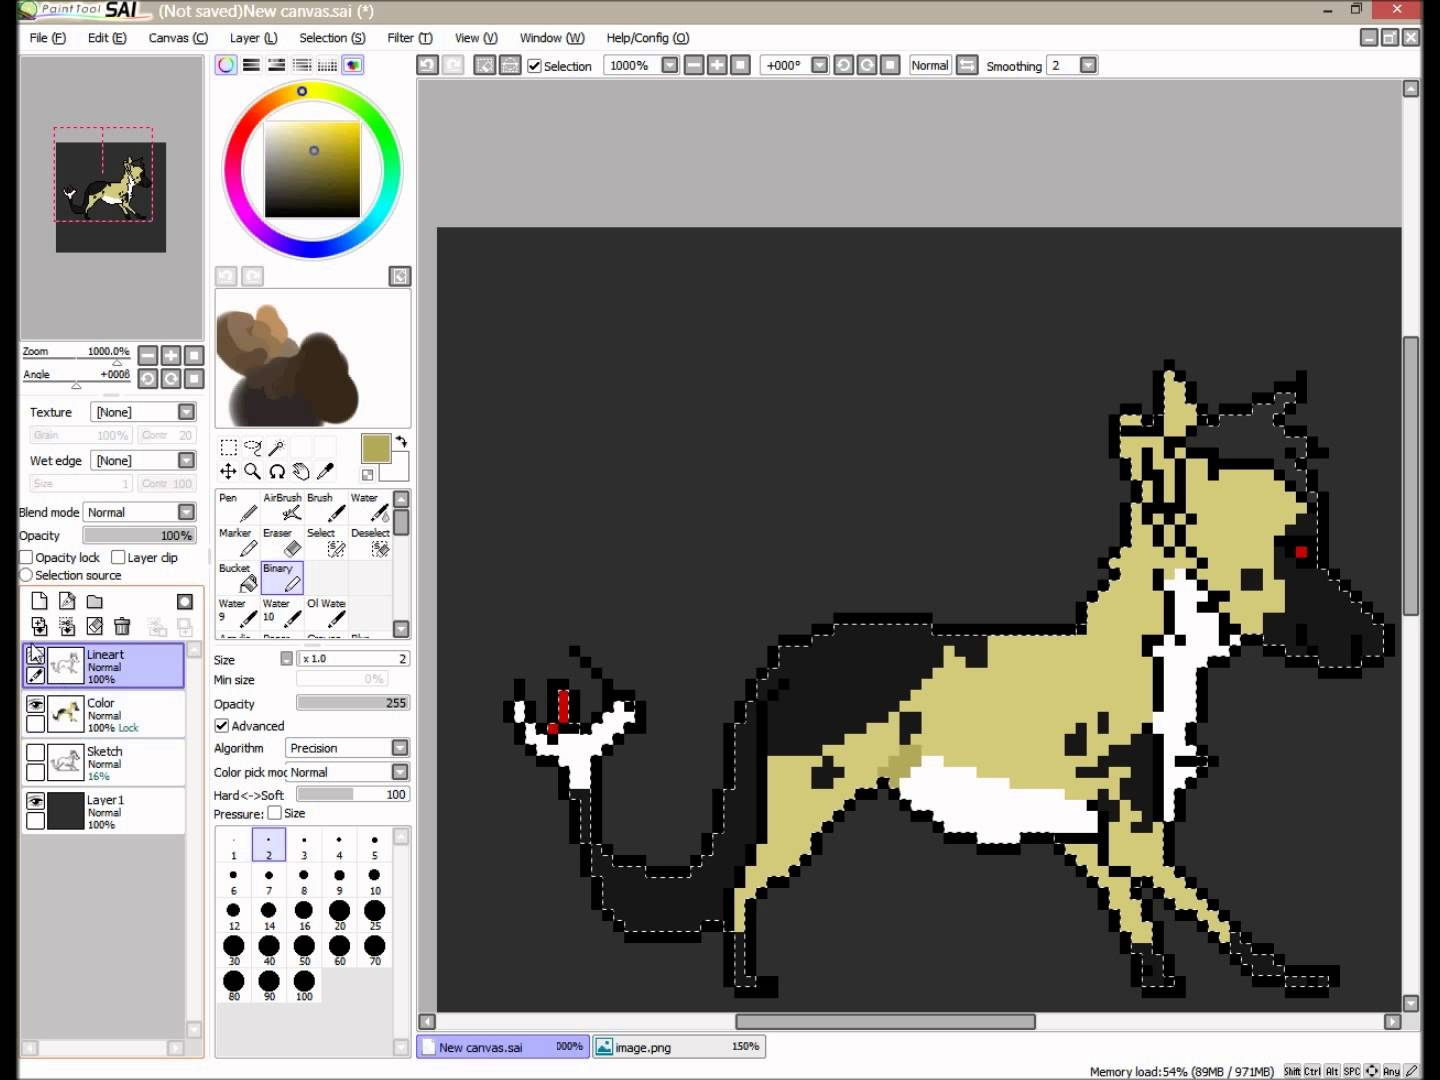 Drawn pixel art paint tool sai Tutorial Basic tutorial Art SAI)